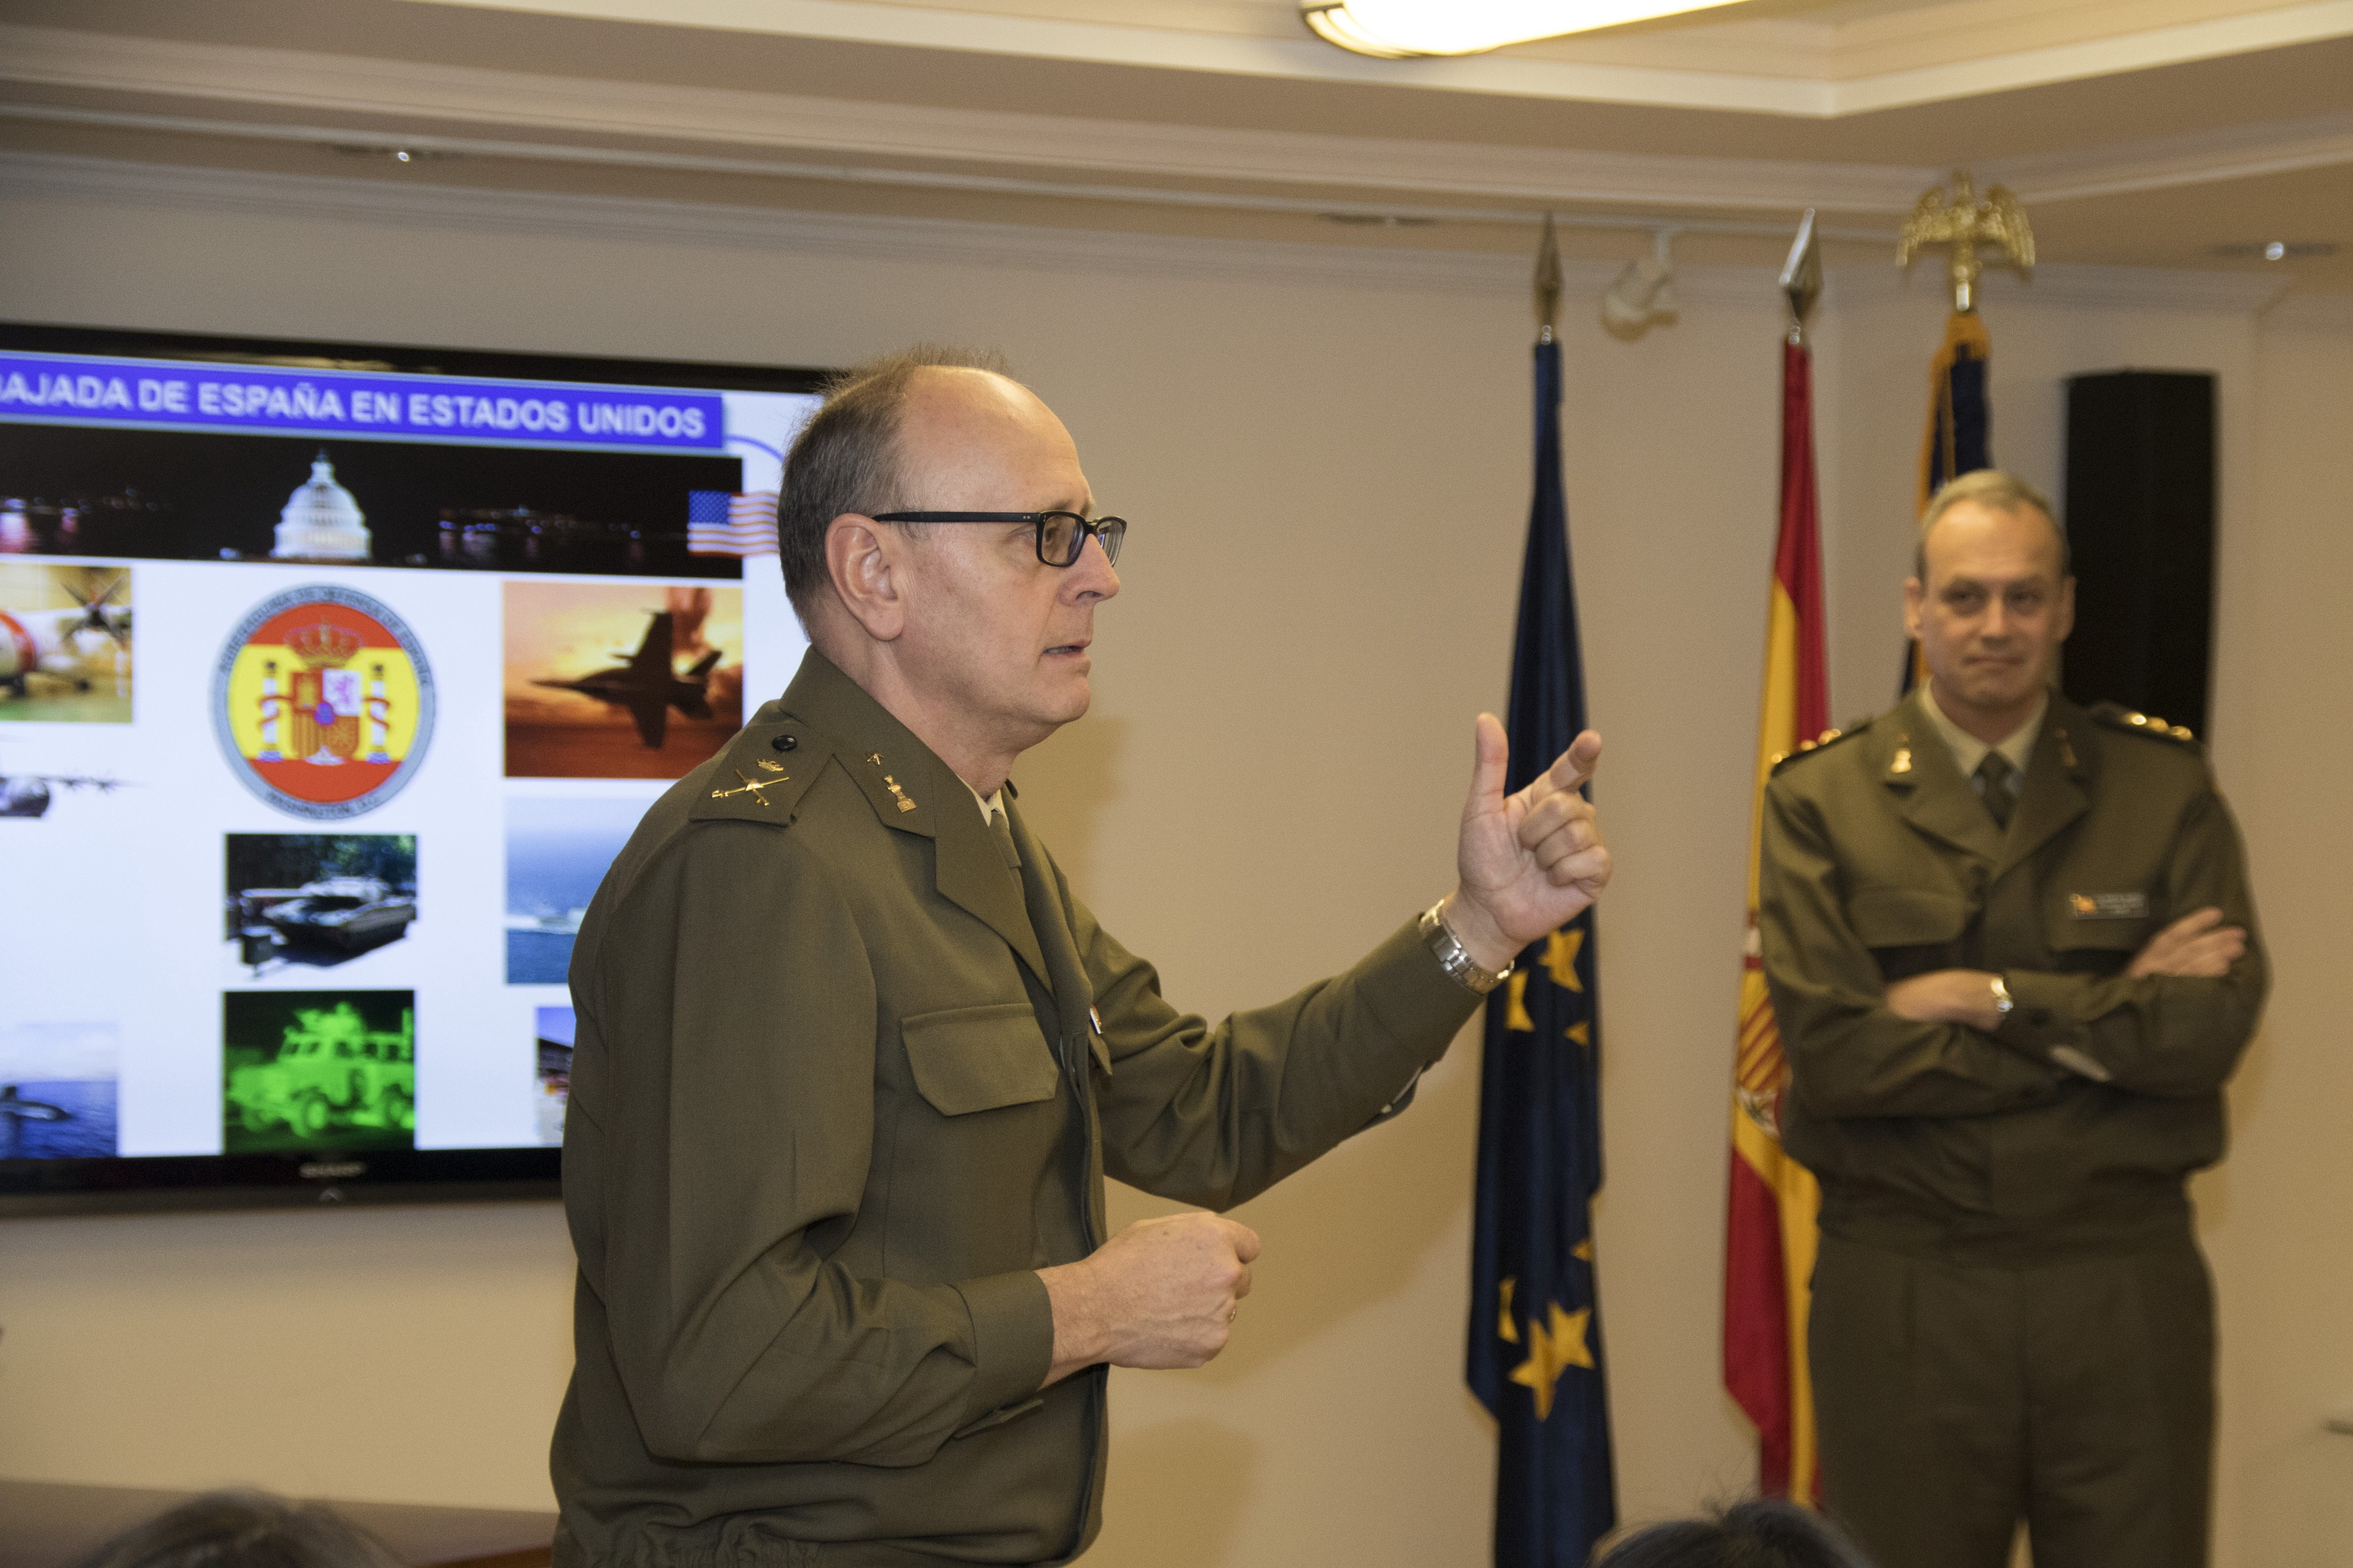 Interview with Spain's Defense Attaché in Washington, D C